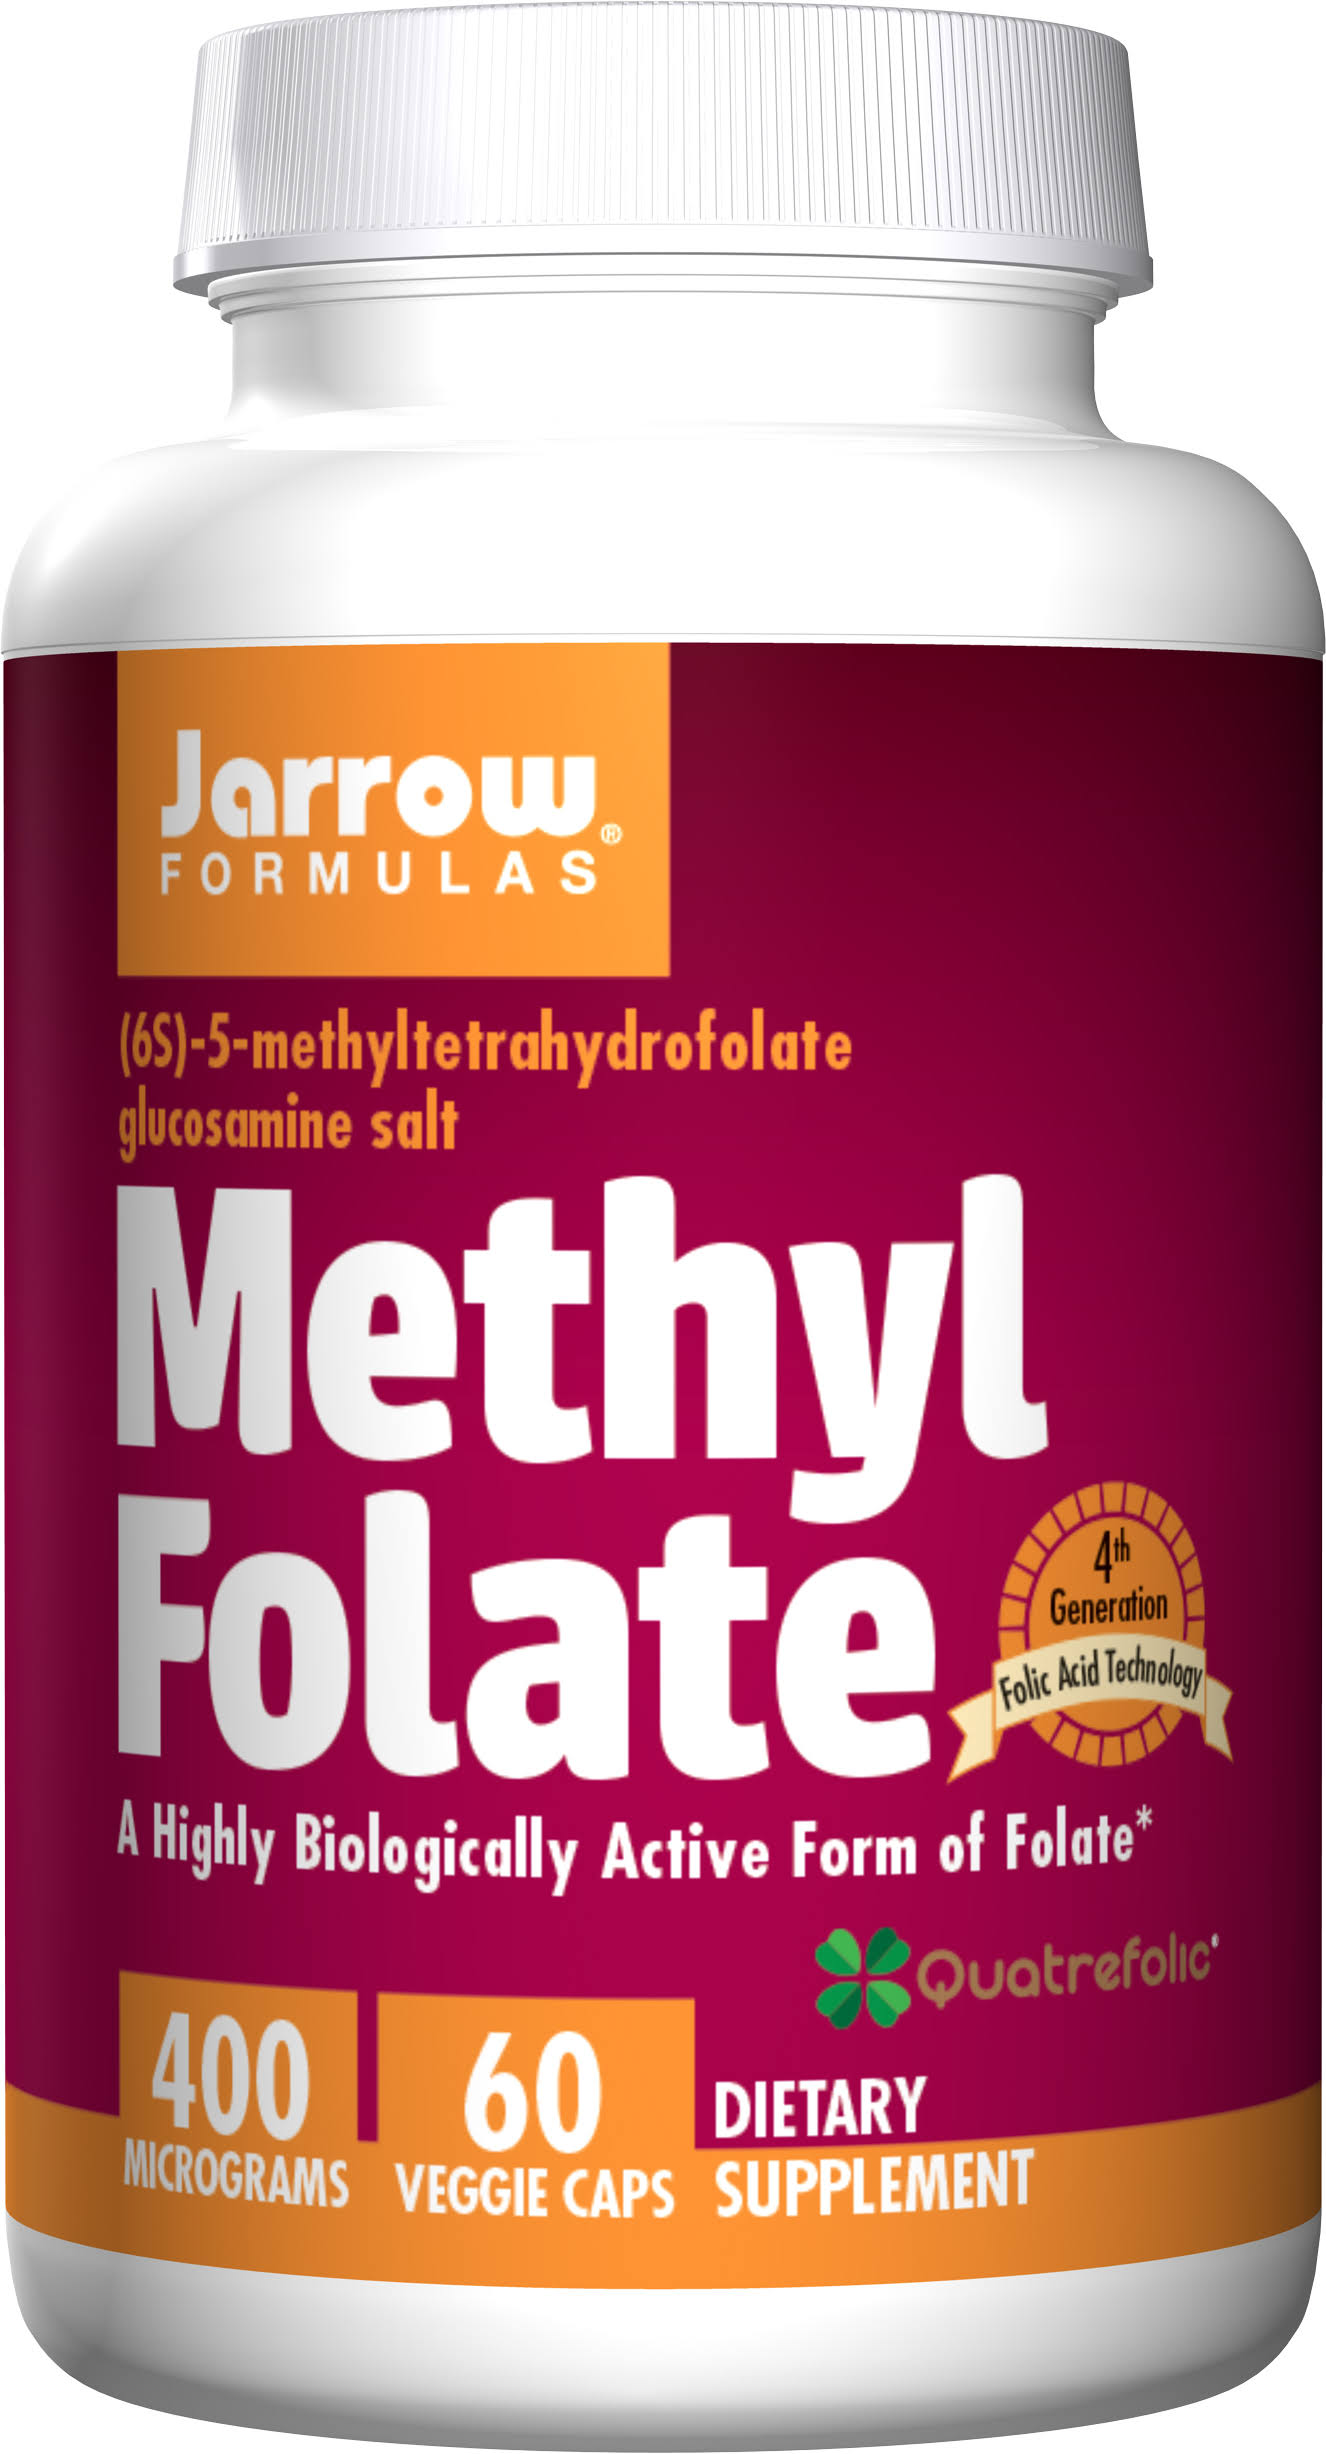 Jarrow Formulas Methyl Folate - 500mg, 60 Capsules